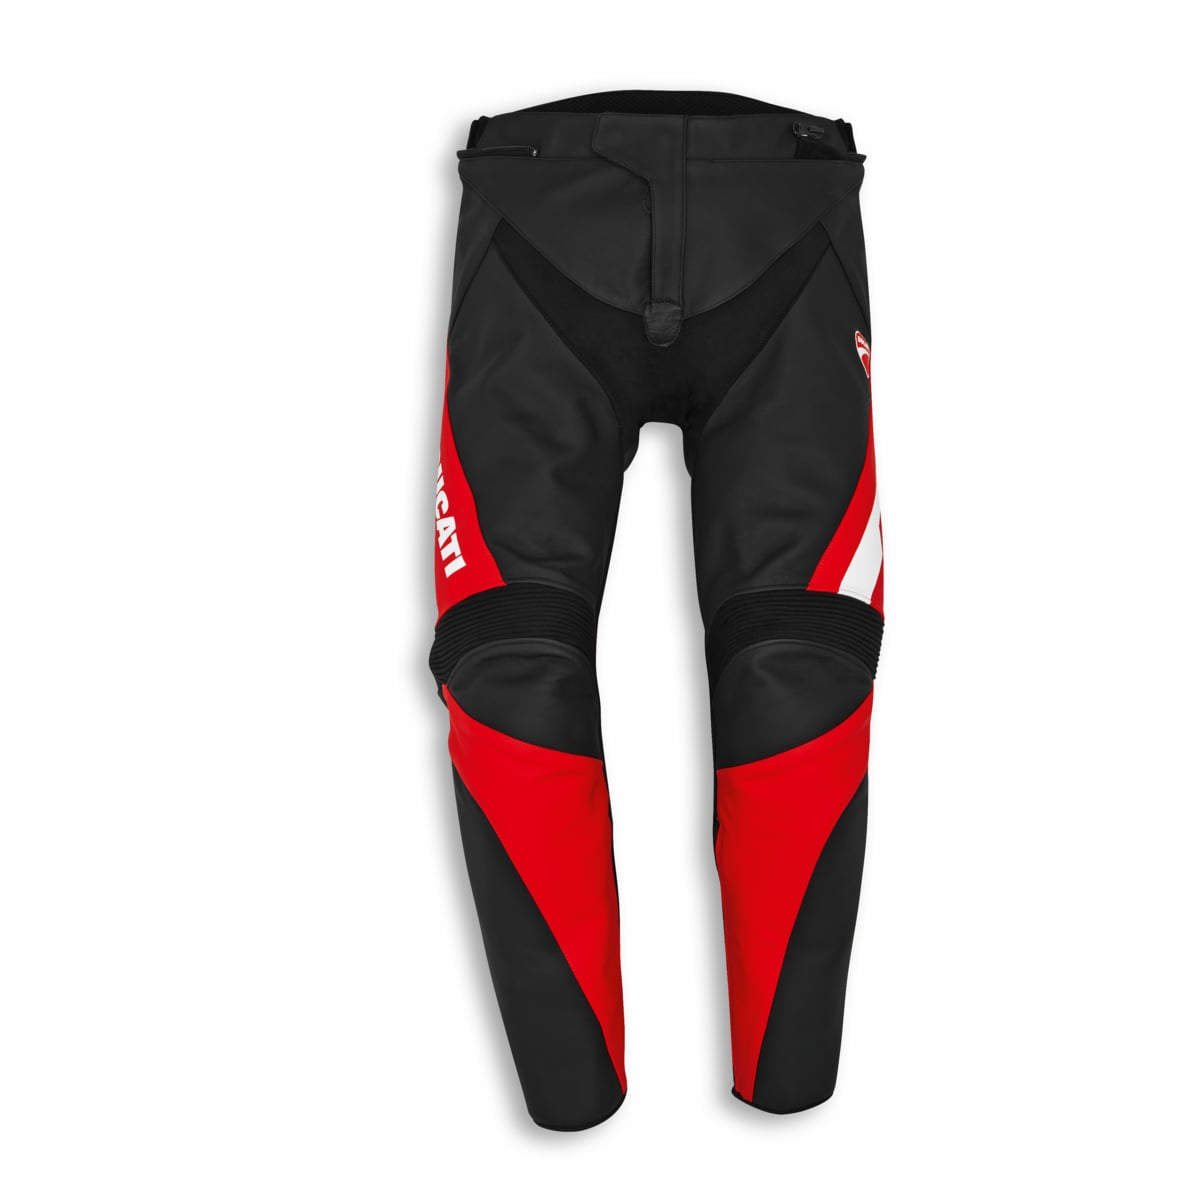 GUANTI MOTO IN PELLE ORIGINALI DUCATI SPEED EVO C1 BY ALPINESTARS